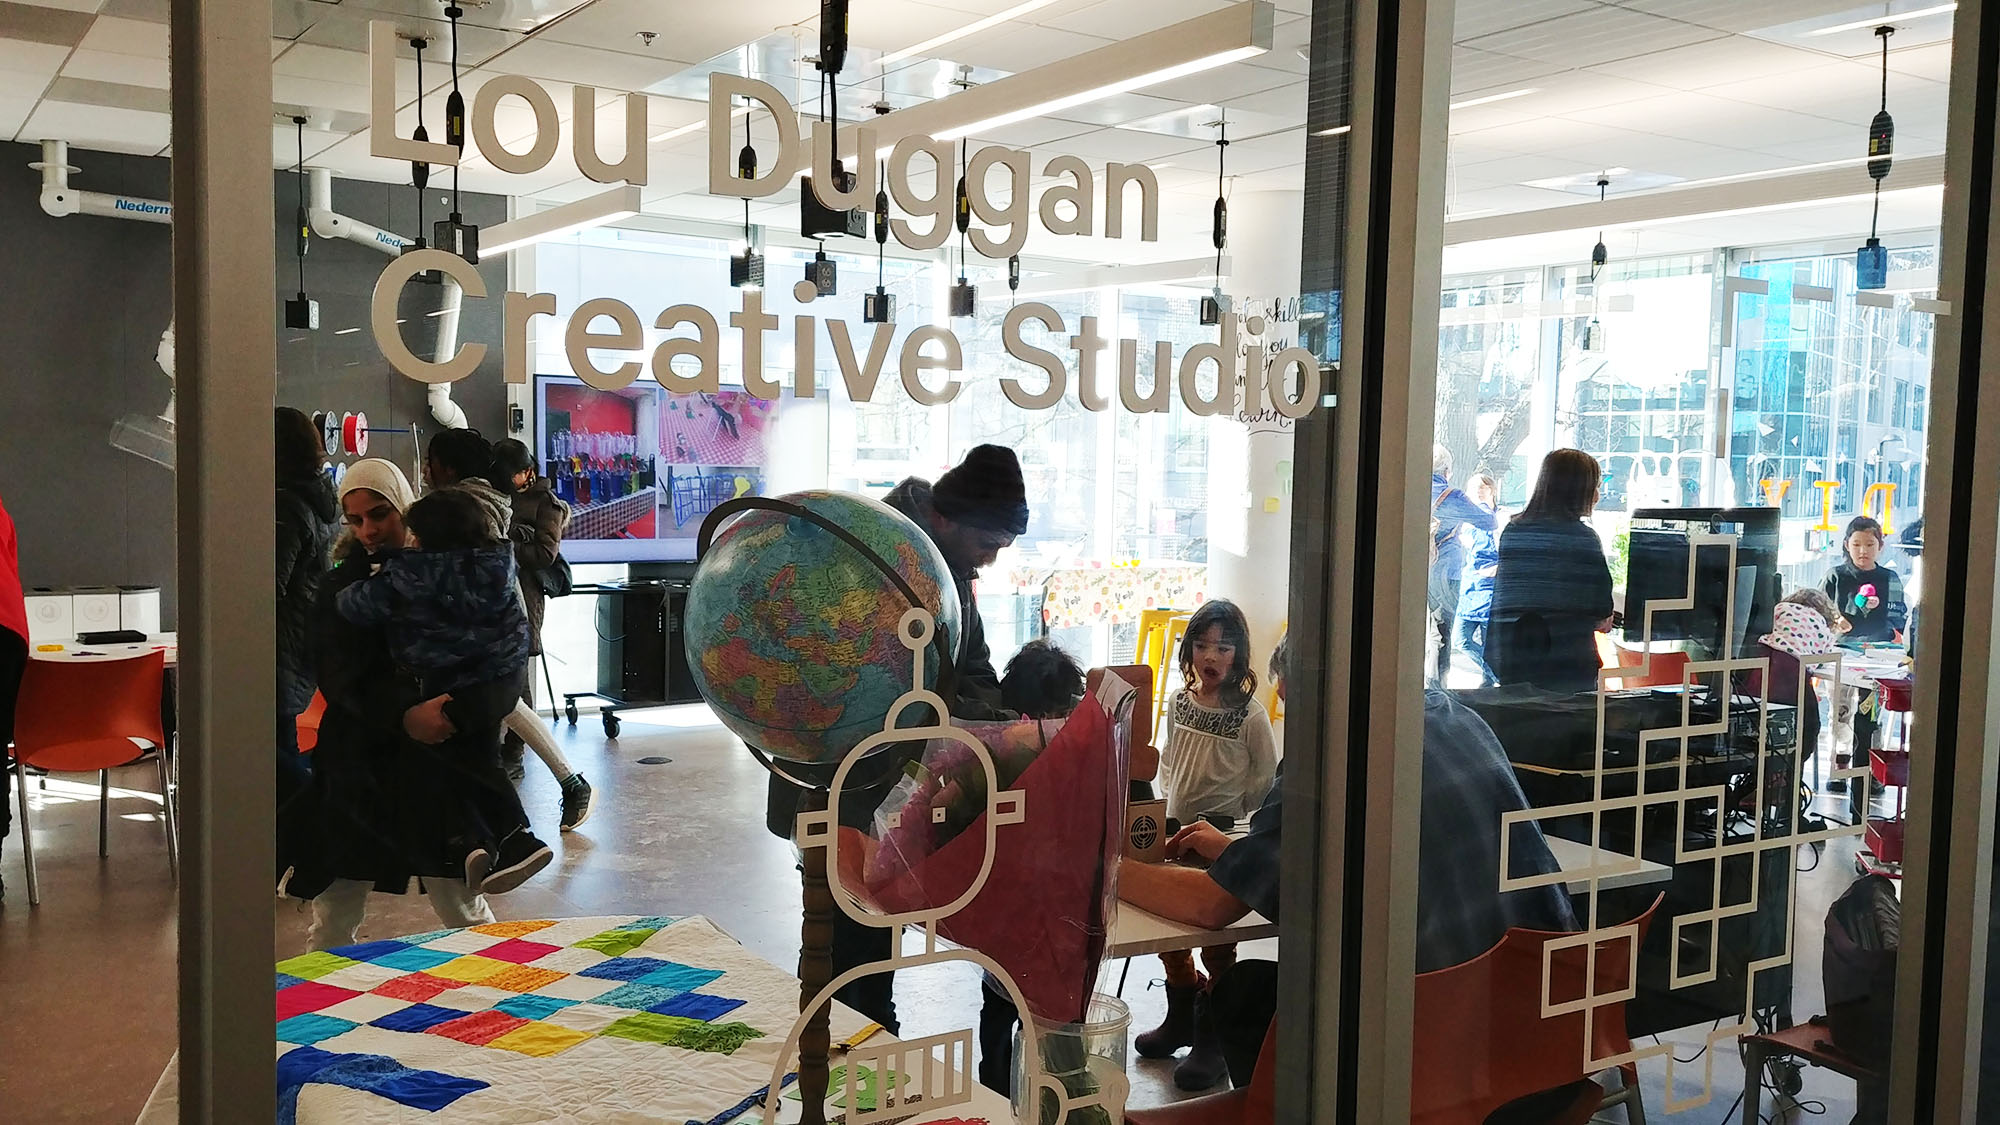 The new and improved Lou Duggan Creative Studio celebrated its grand opening on Saturday.